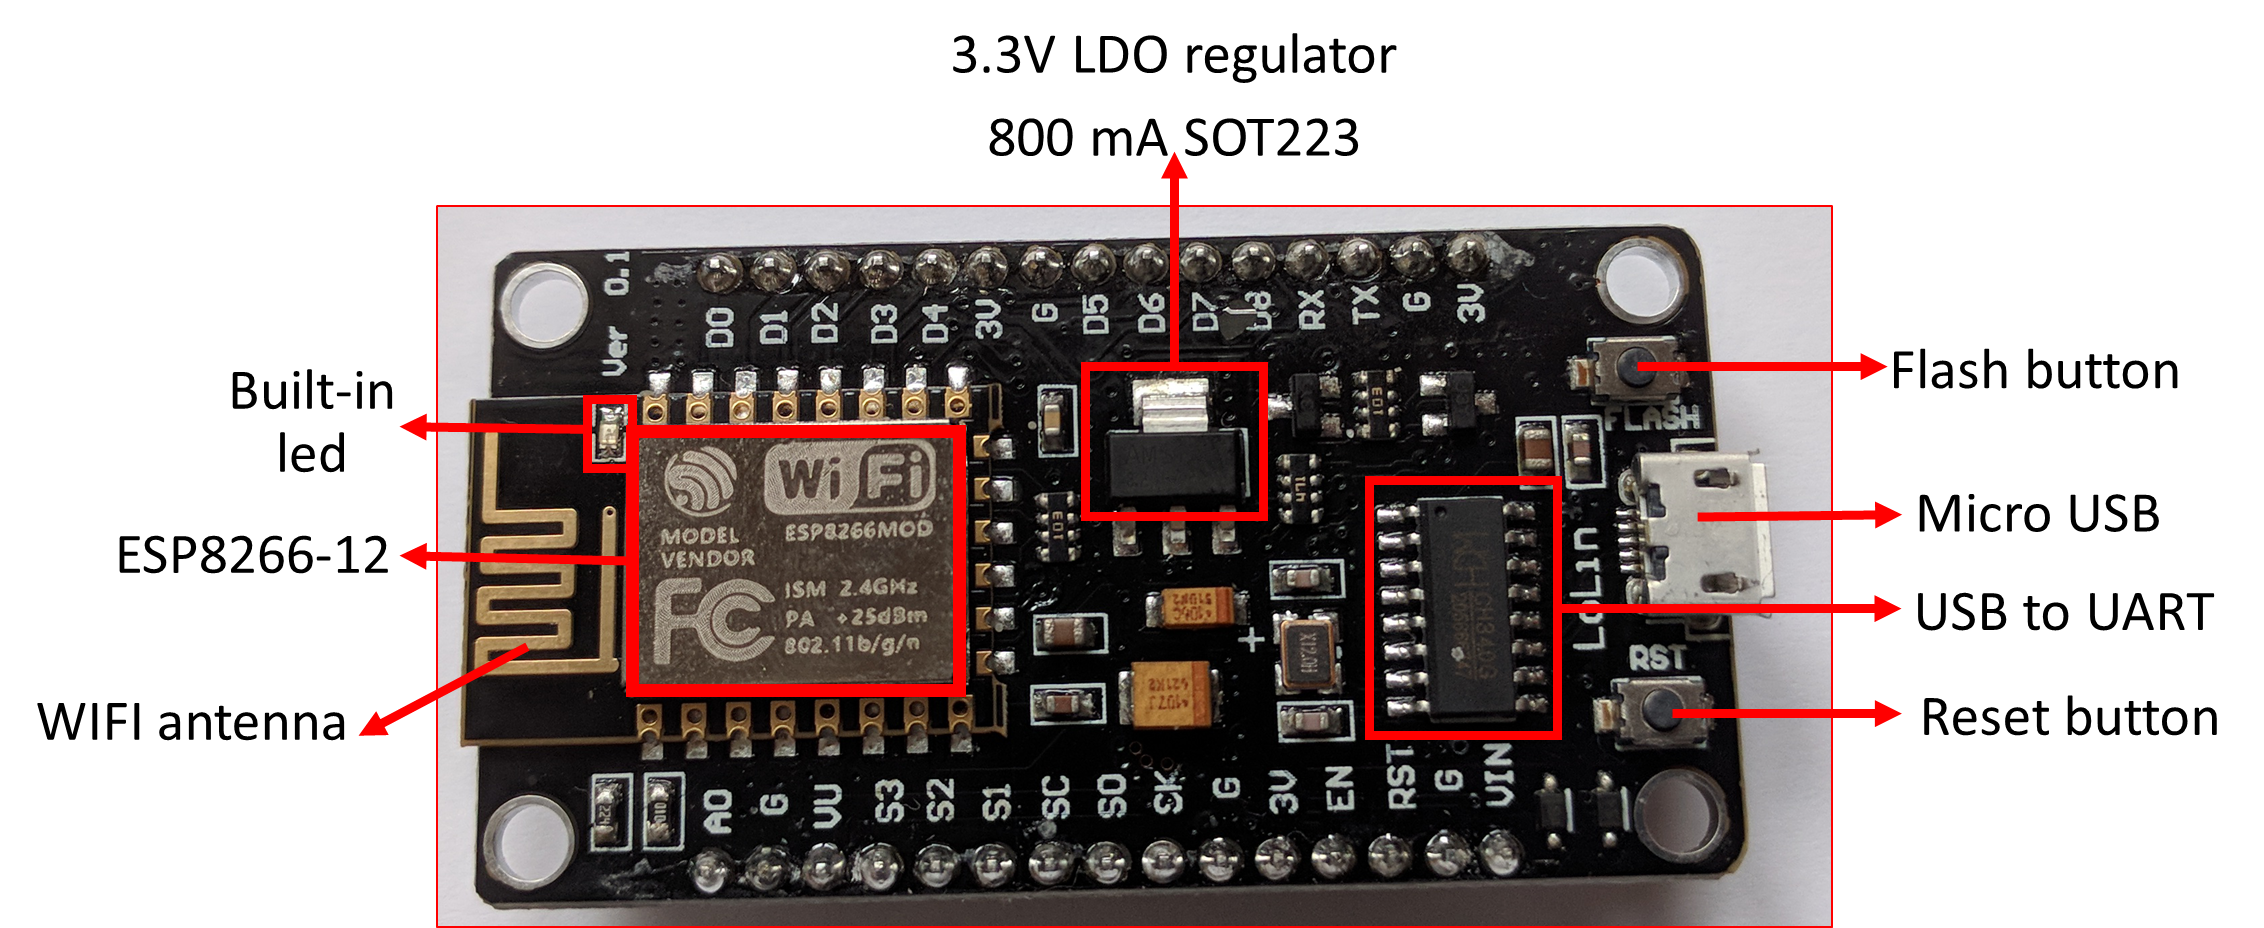 Introduction to the Internet of Things (IoT): ESP8266 architecture